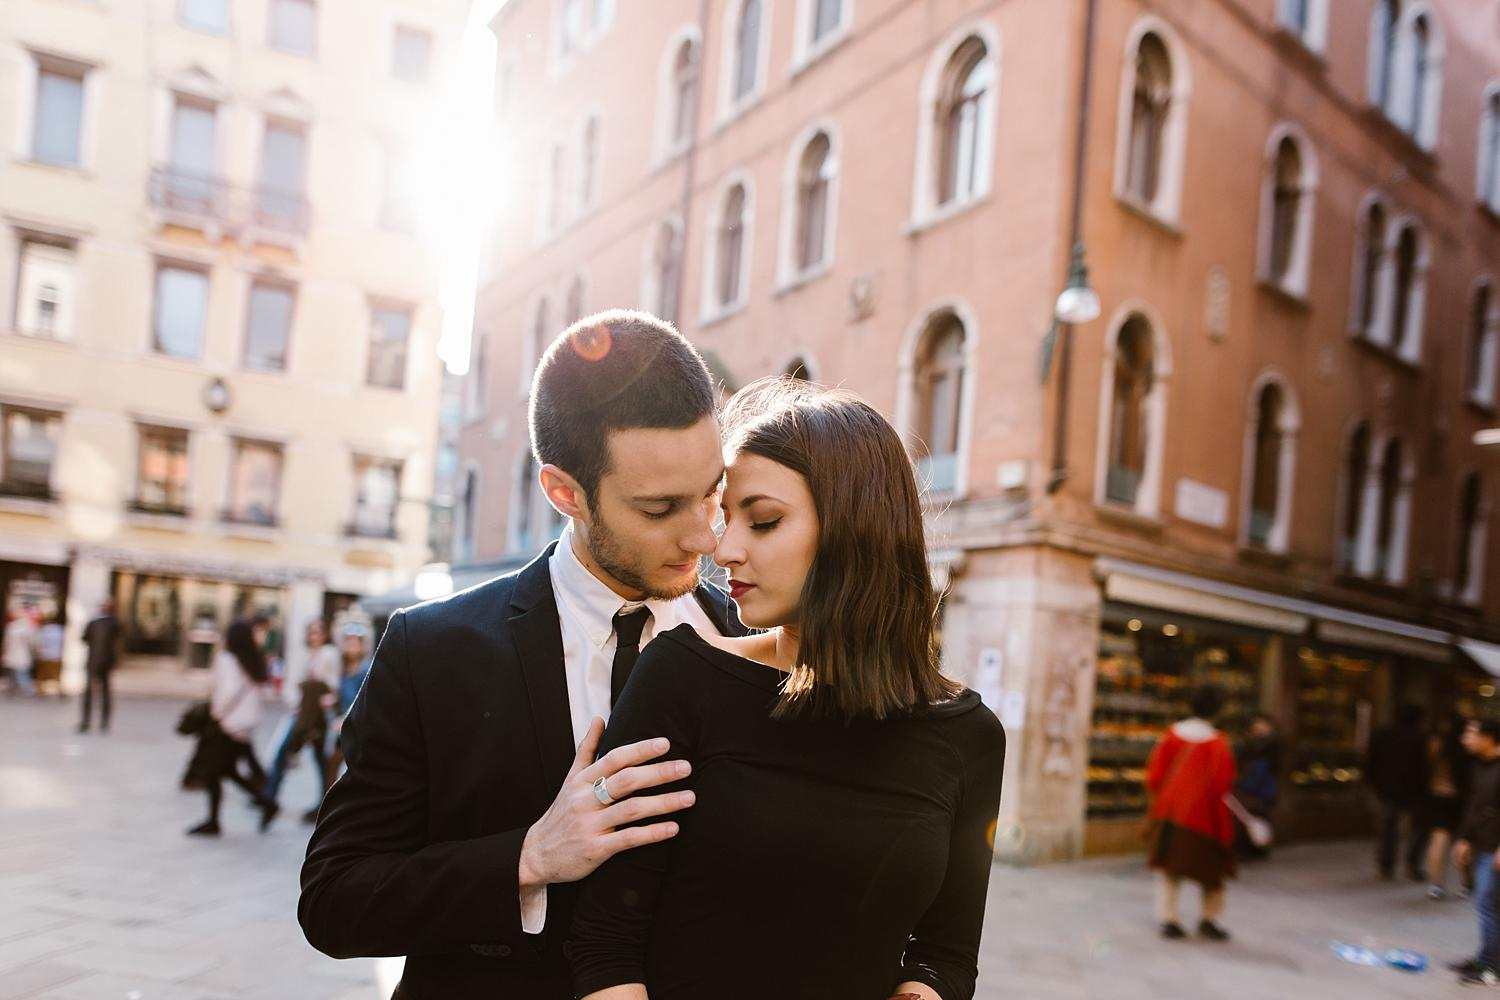 GL 39 - Giulia & Leonardo - An Intimate Shooting in Venice